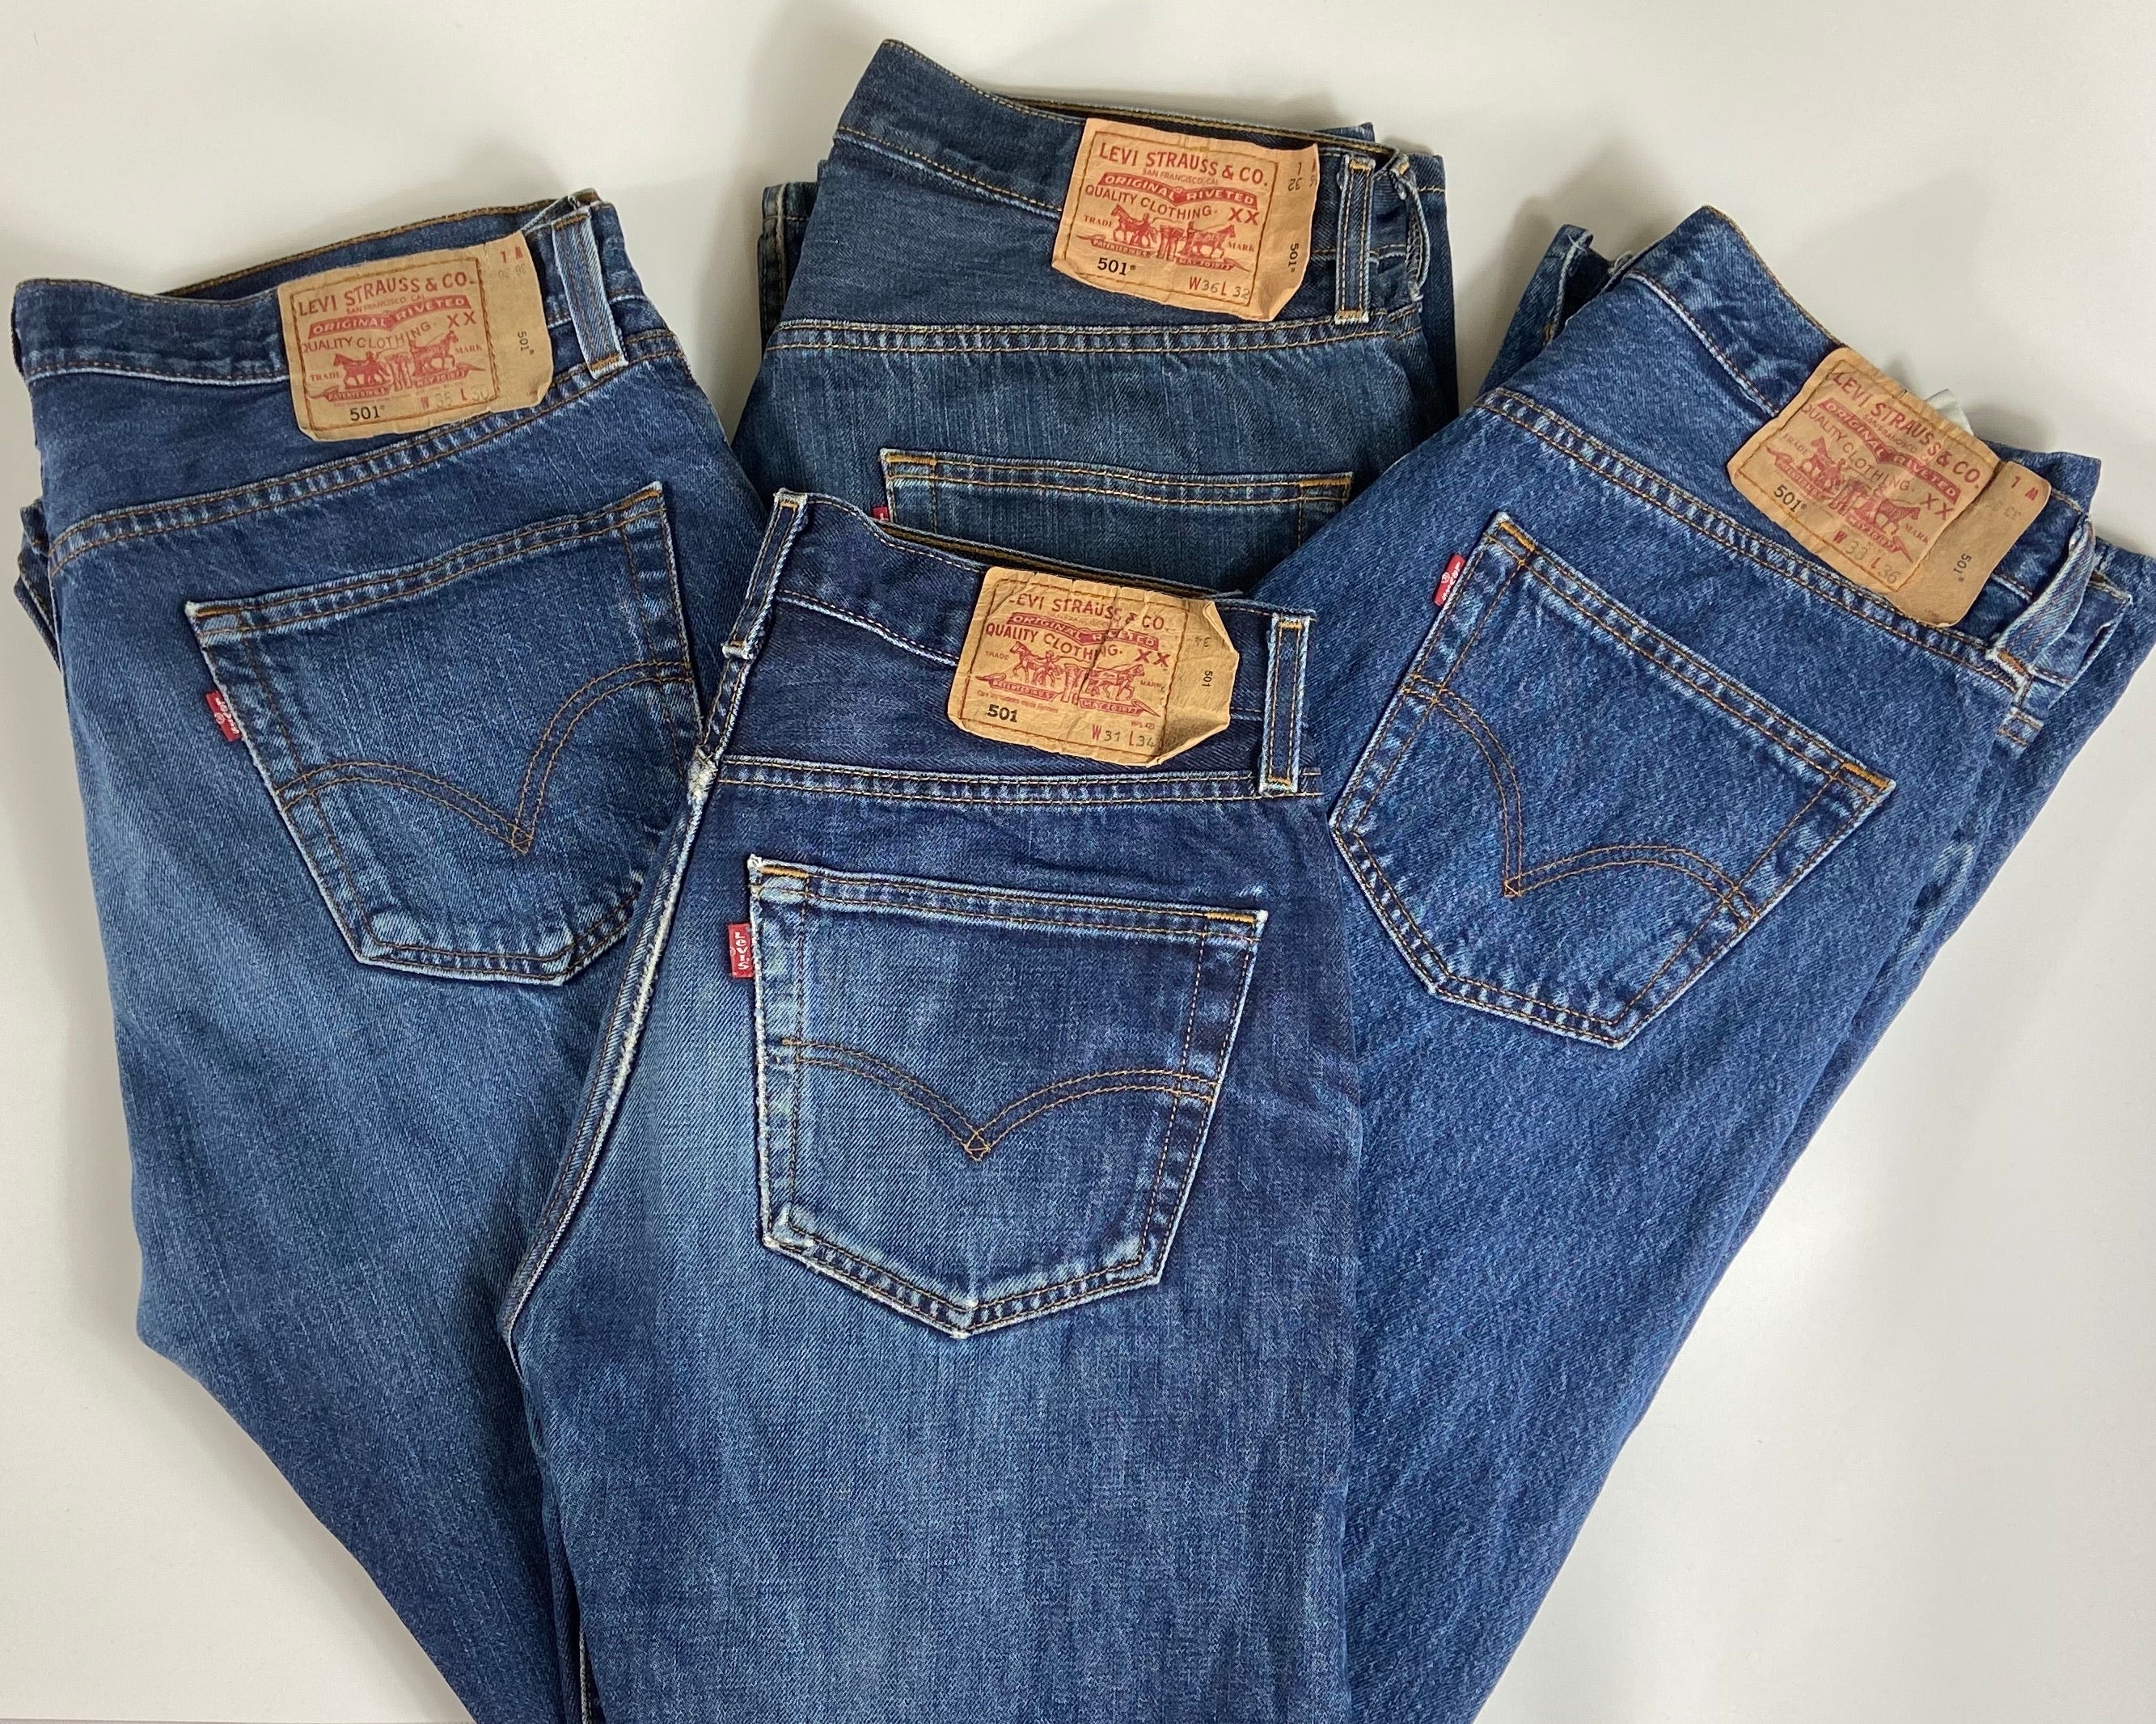 Vintage Original Levi's 501 Button Fly Jeans Waist 40 Length 30